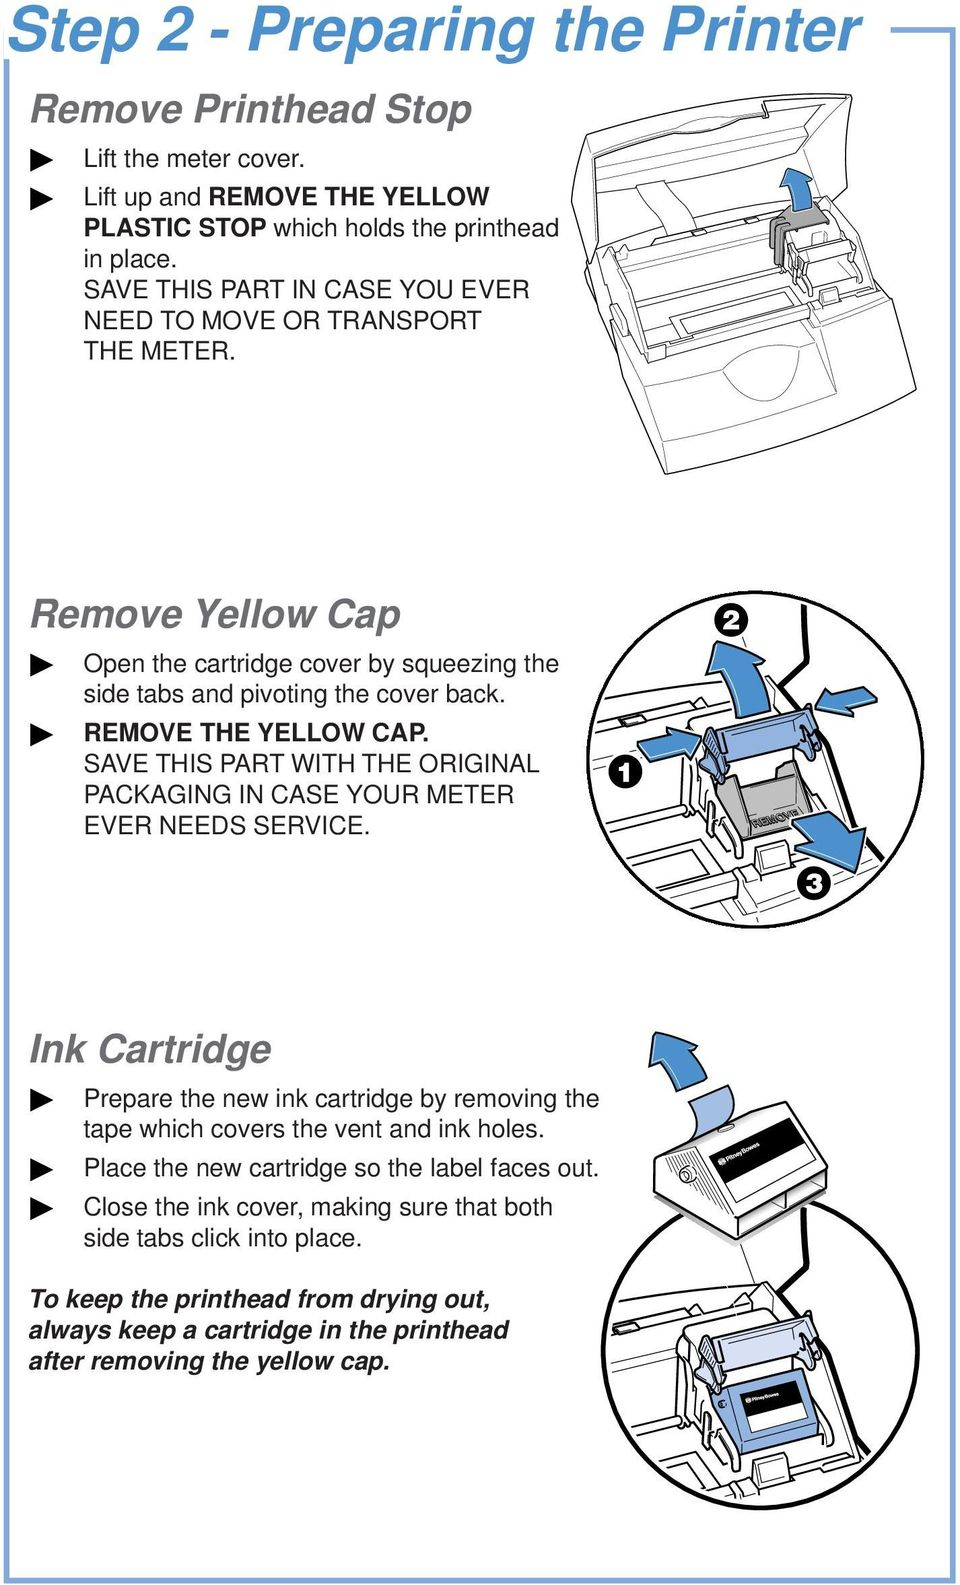 SAVE THIS PART WITH THE ORIGINAL PACKAGING IN CASE YOUR METER EVER NEEDS SERVICE. Ink Cartridge Prepare the new ink cartridge by removing the tape which covers the vent and ink holes.